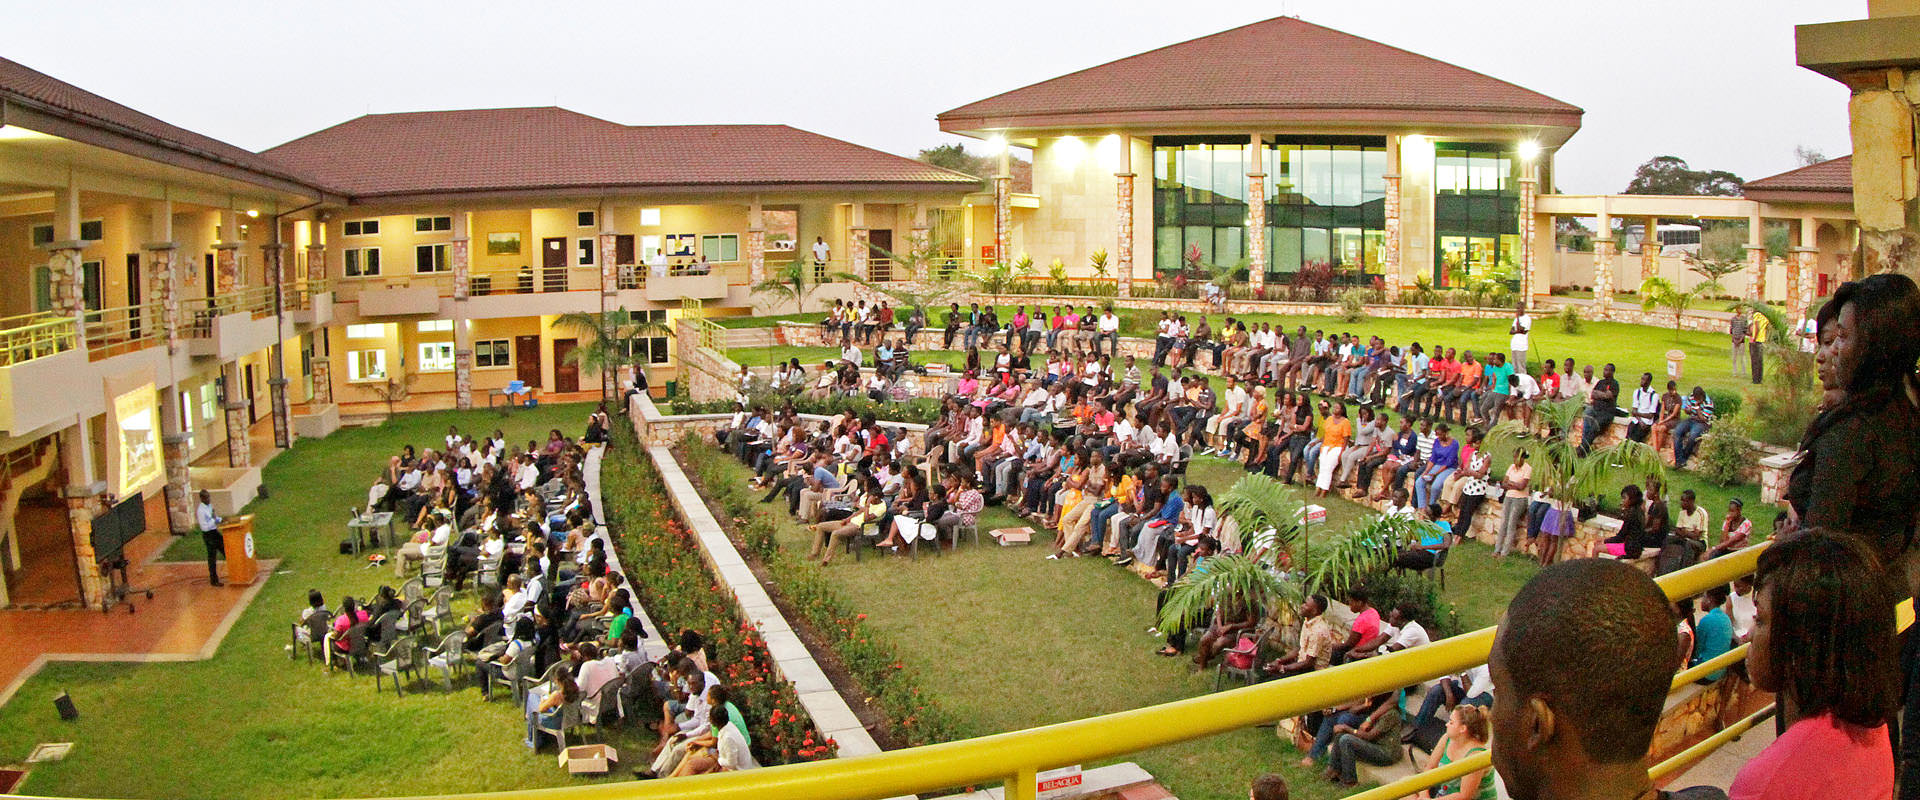 An amphitheatre for gatherings and events